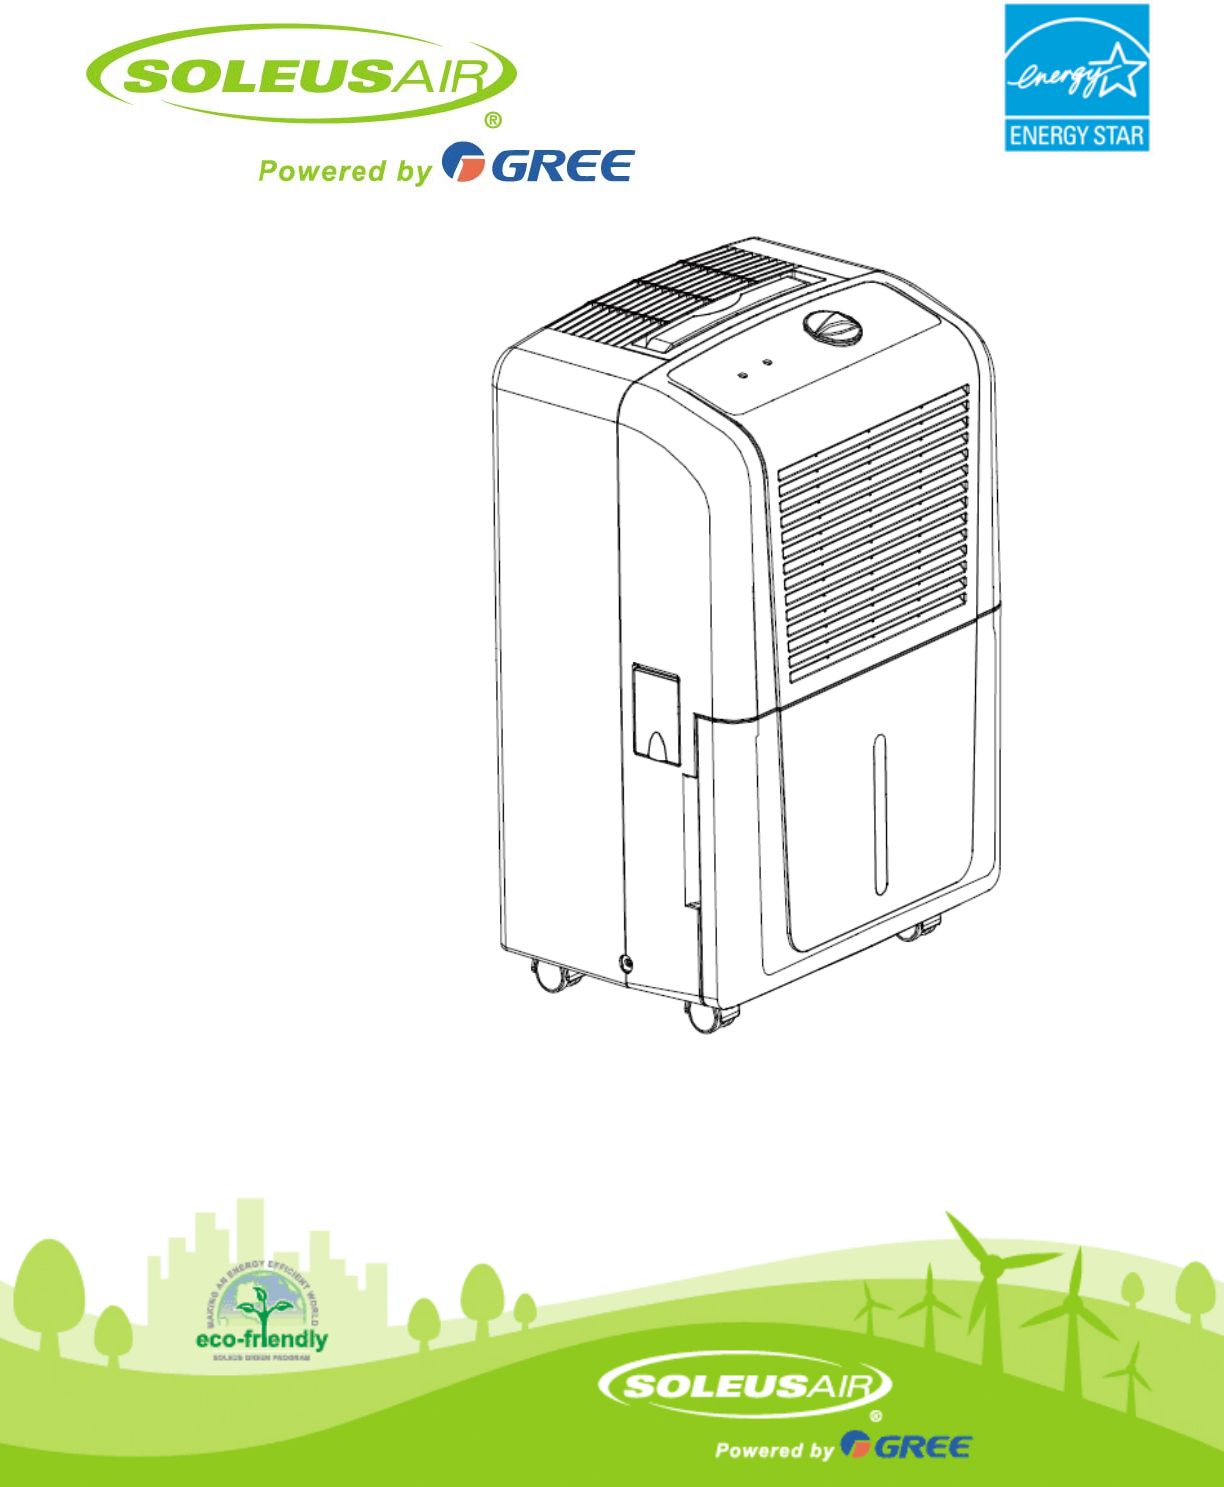 Soleus Dehumidifier Diagram Trusted Wiring Air Sg Deh 25m 1 User Guide Manualsonline Com With Pump